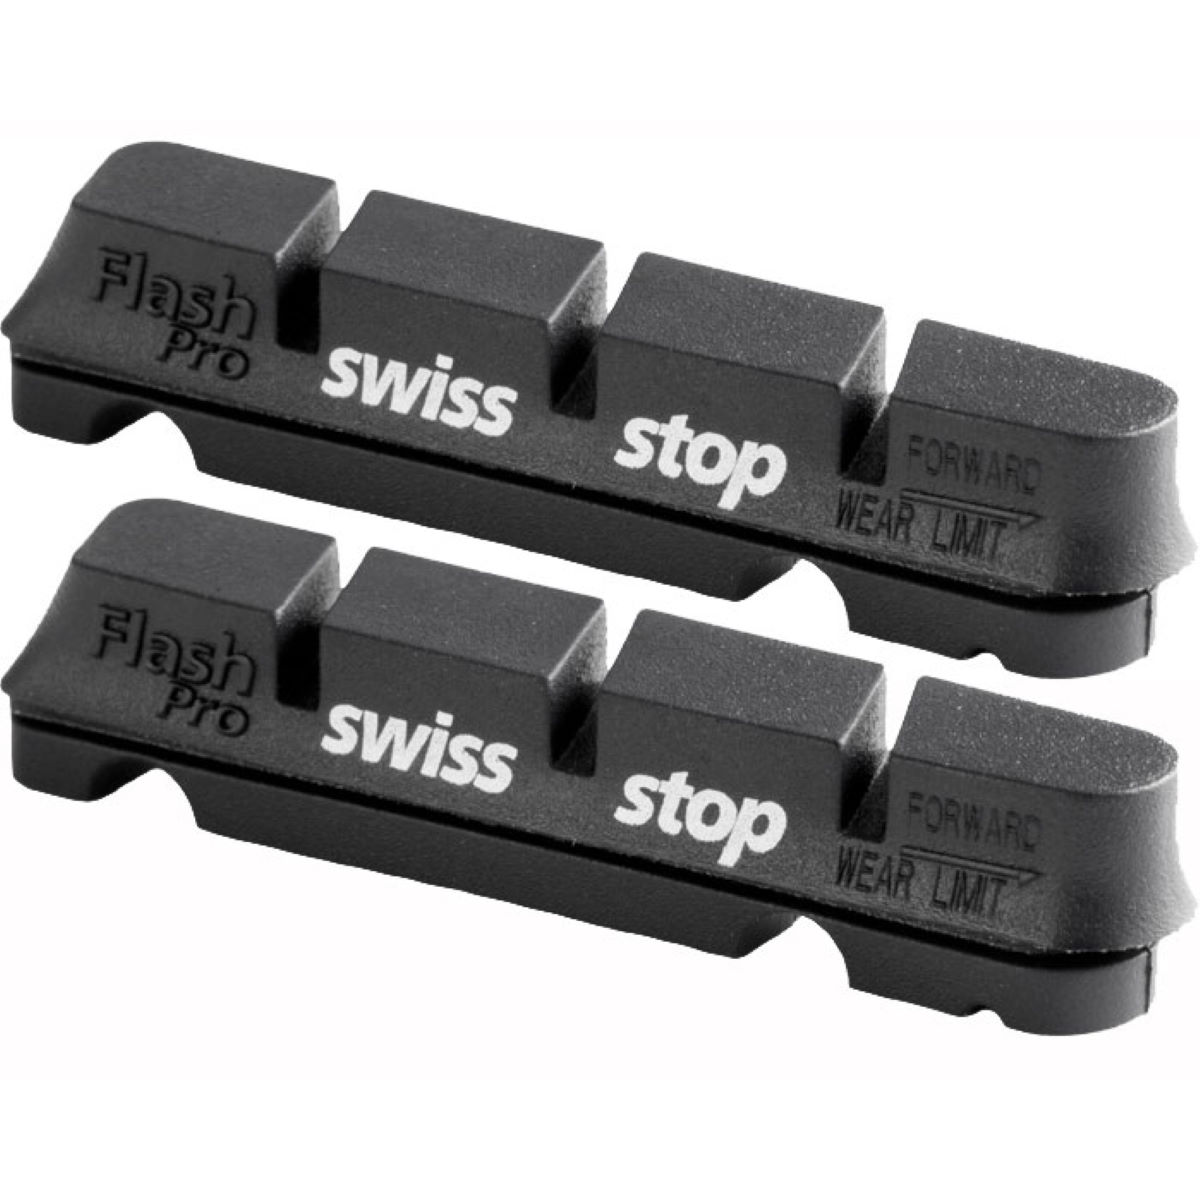 Swissstop Flash Pro Black Alloy Rim Brake Pads